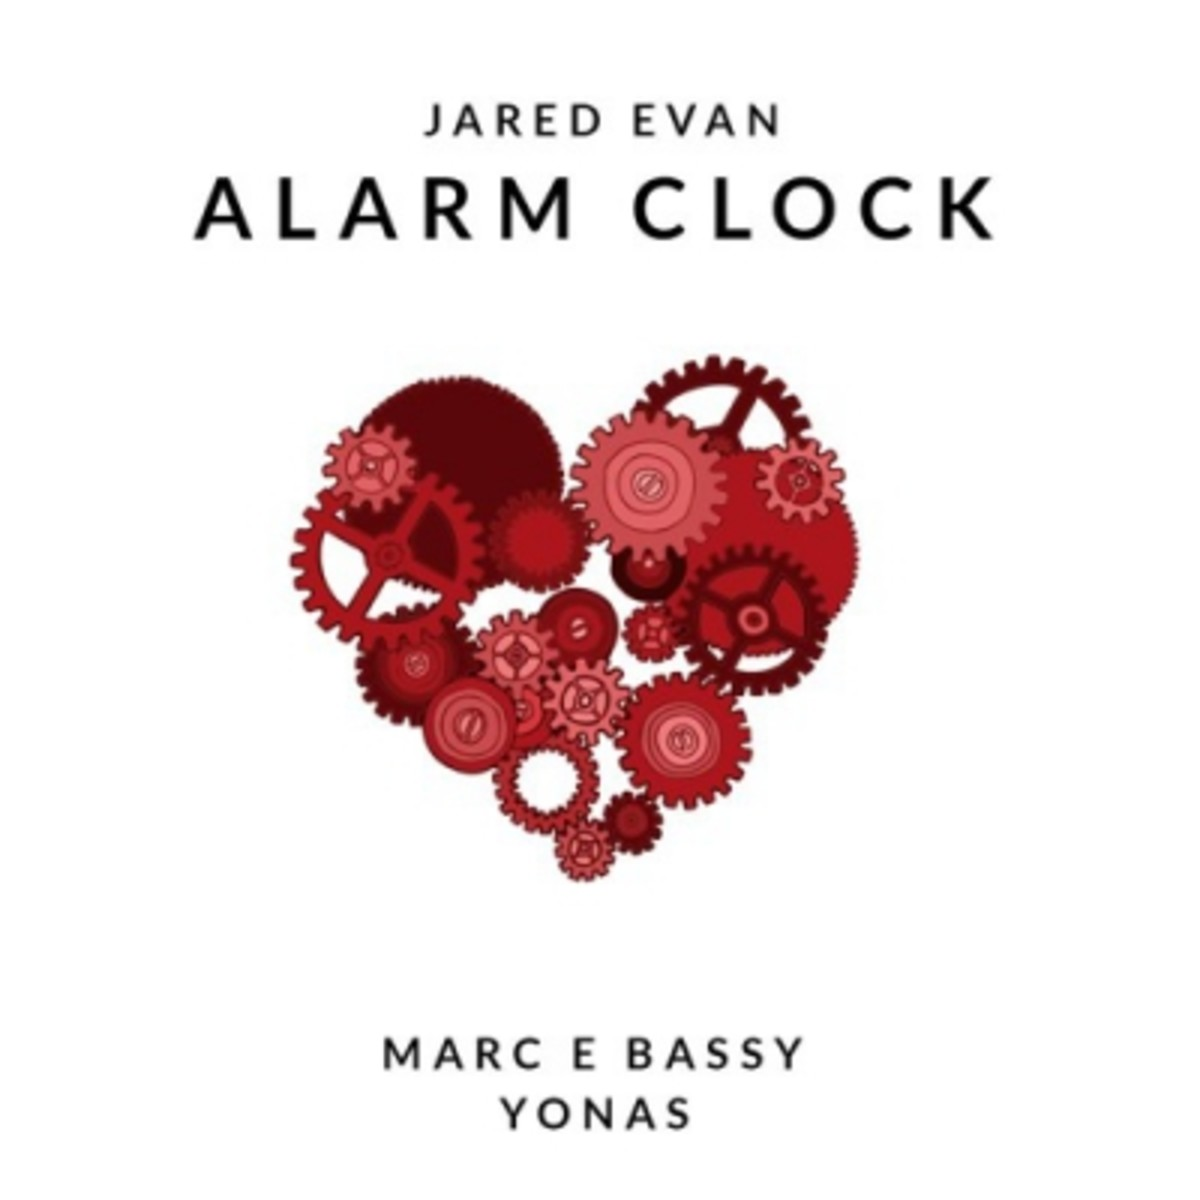 jared-evan-alarm-clock.jpg